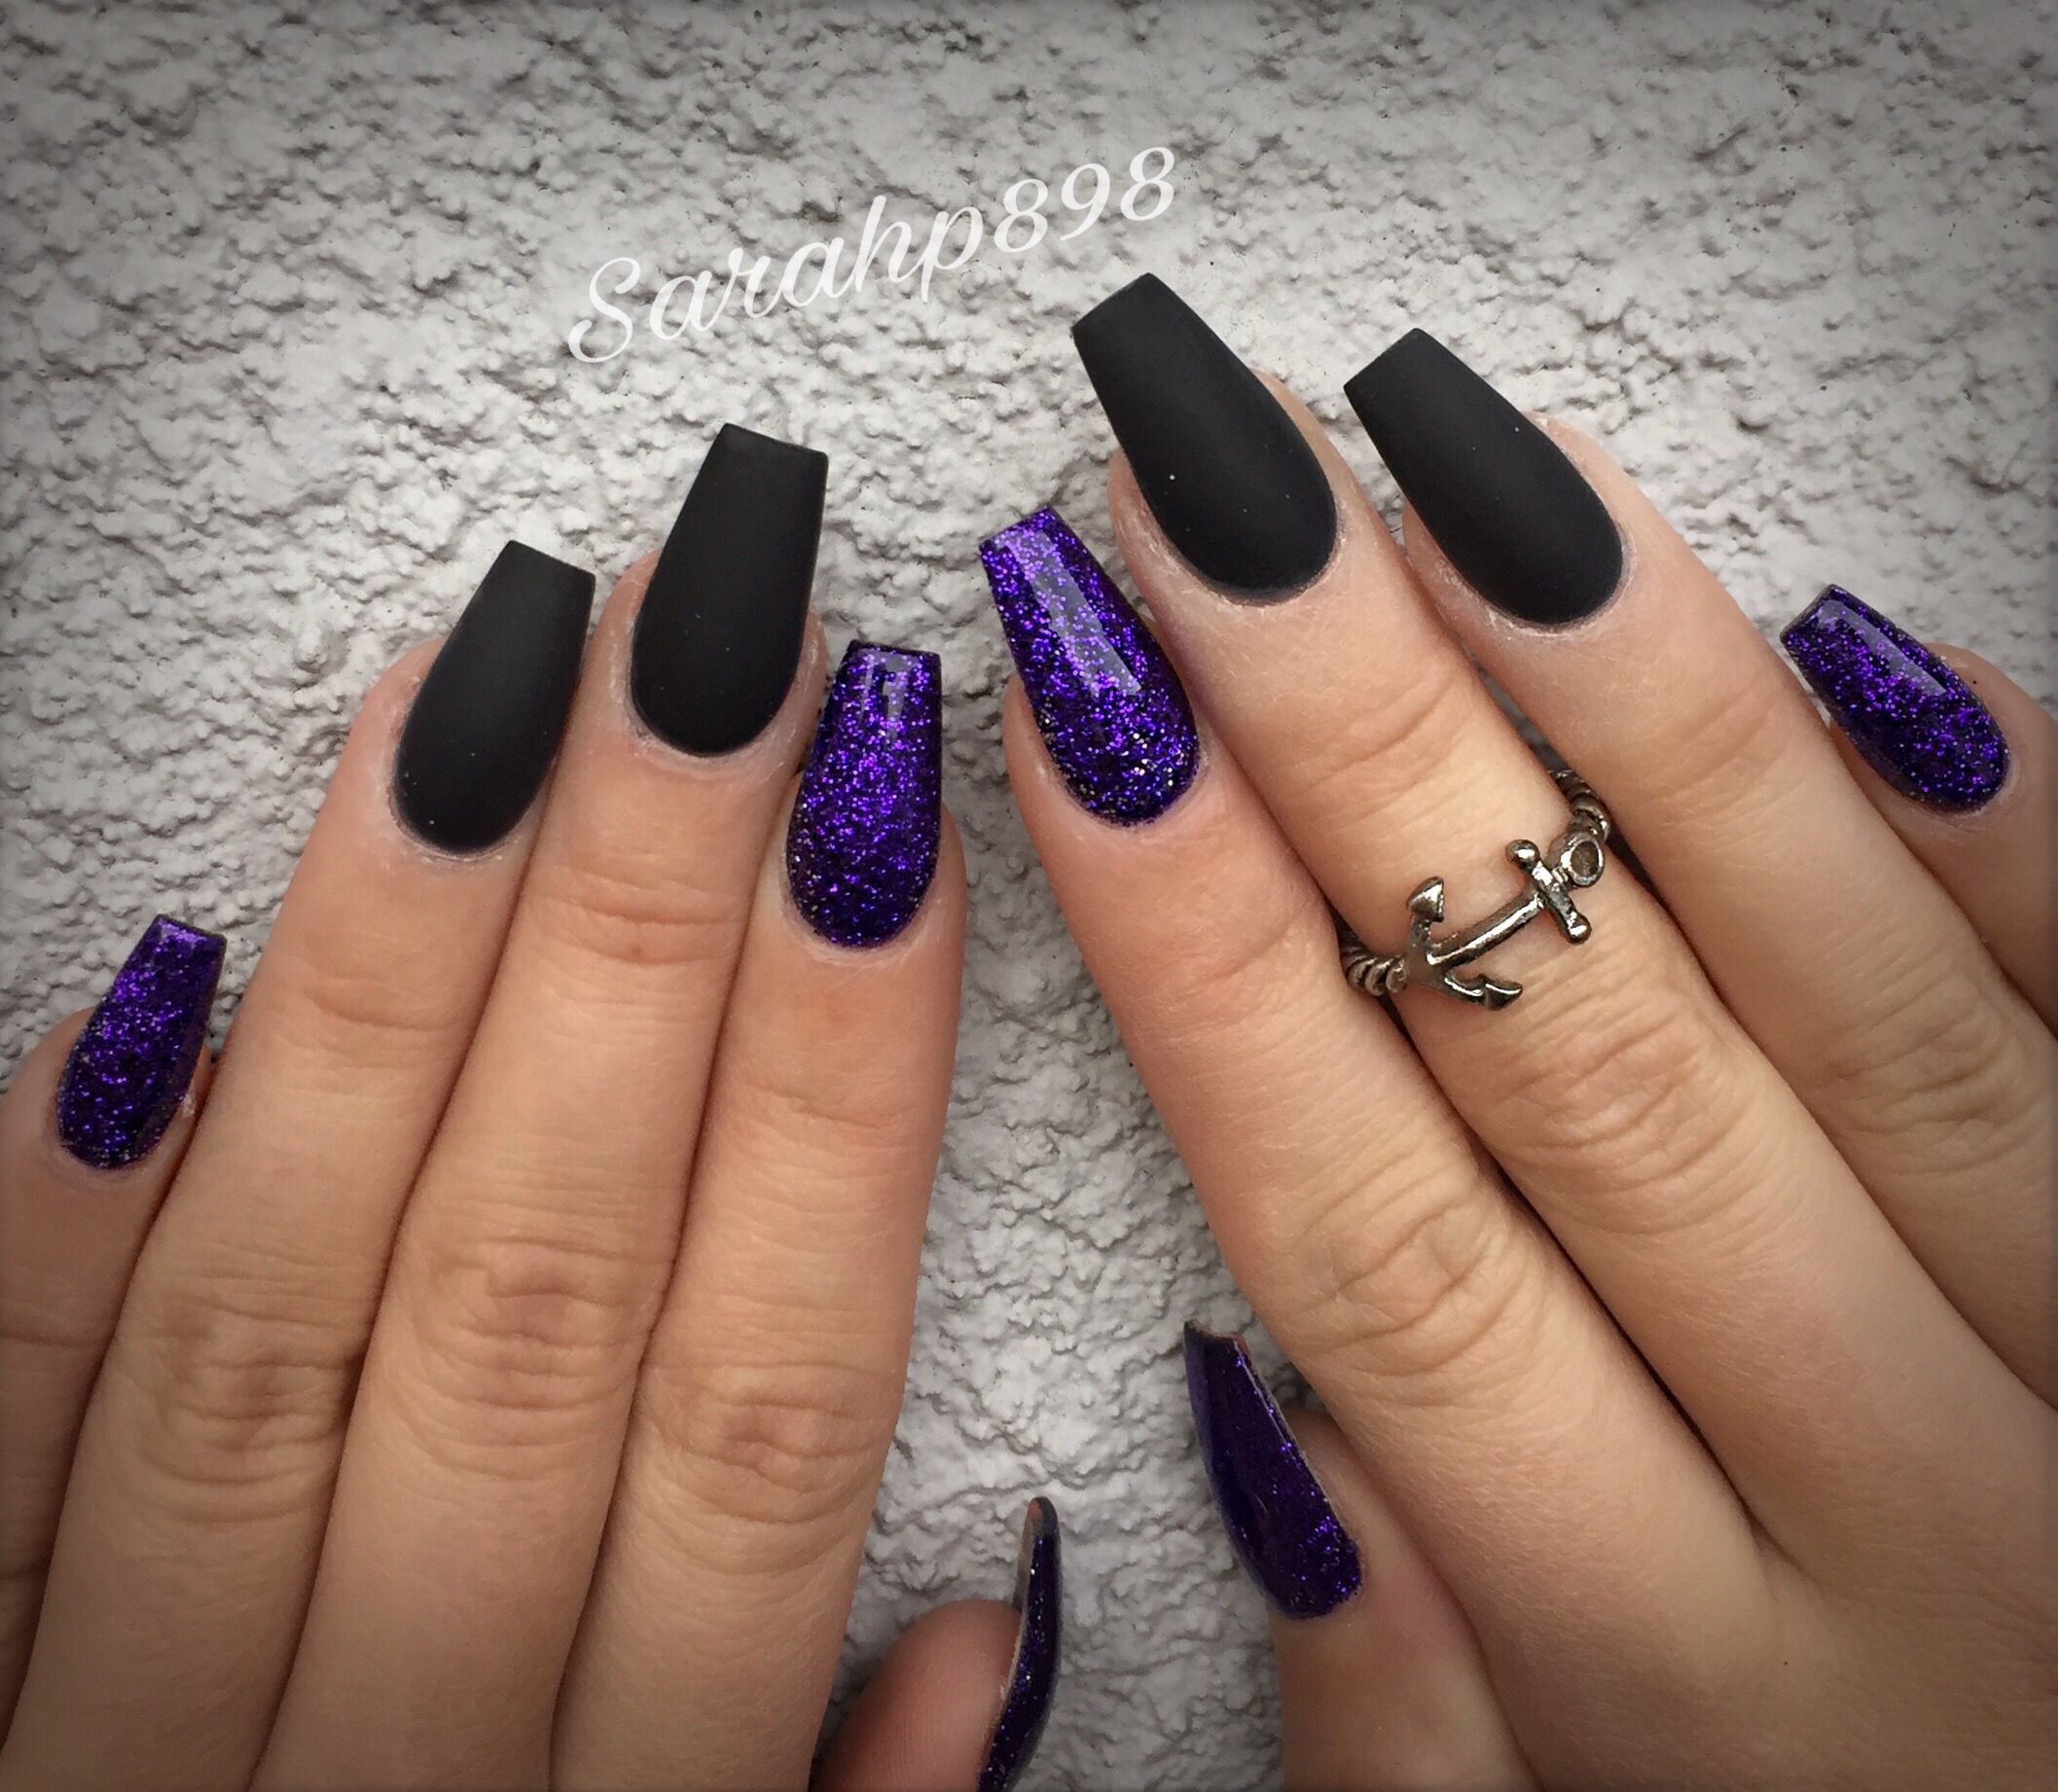 Matte black nails #matteblack #coffinnails | Pretty ...